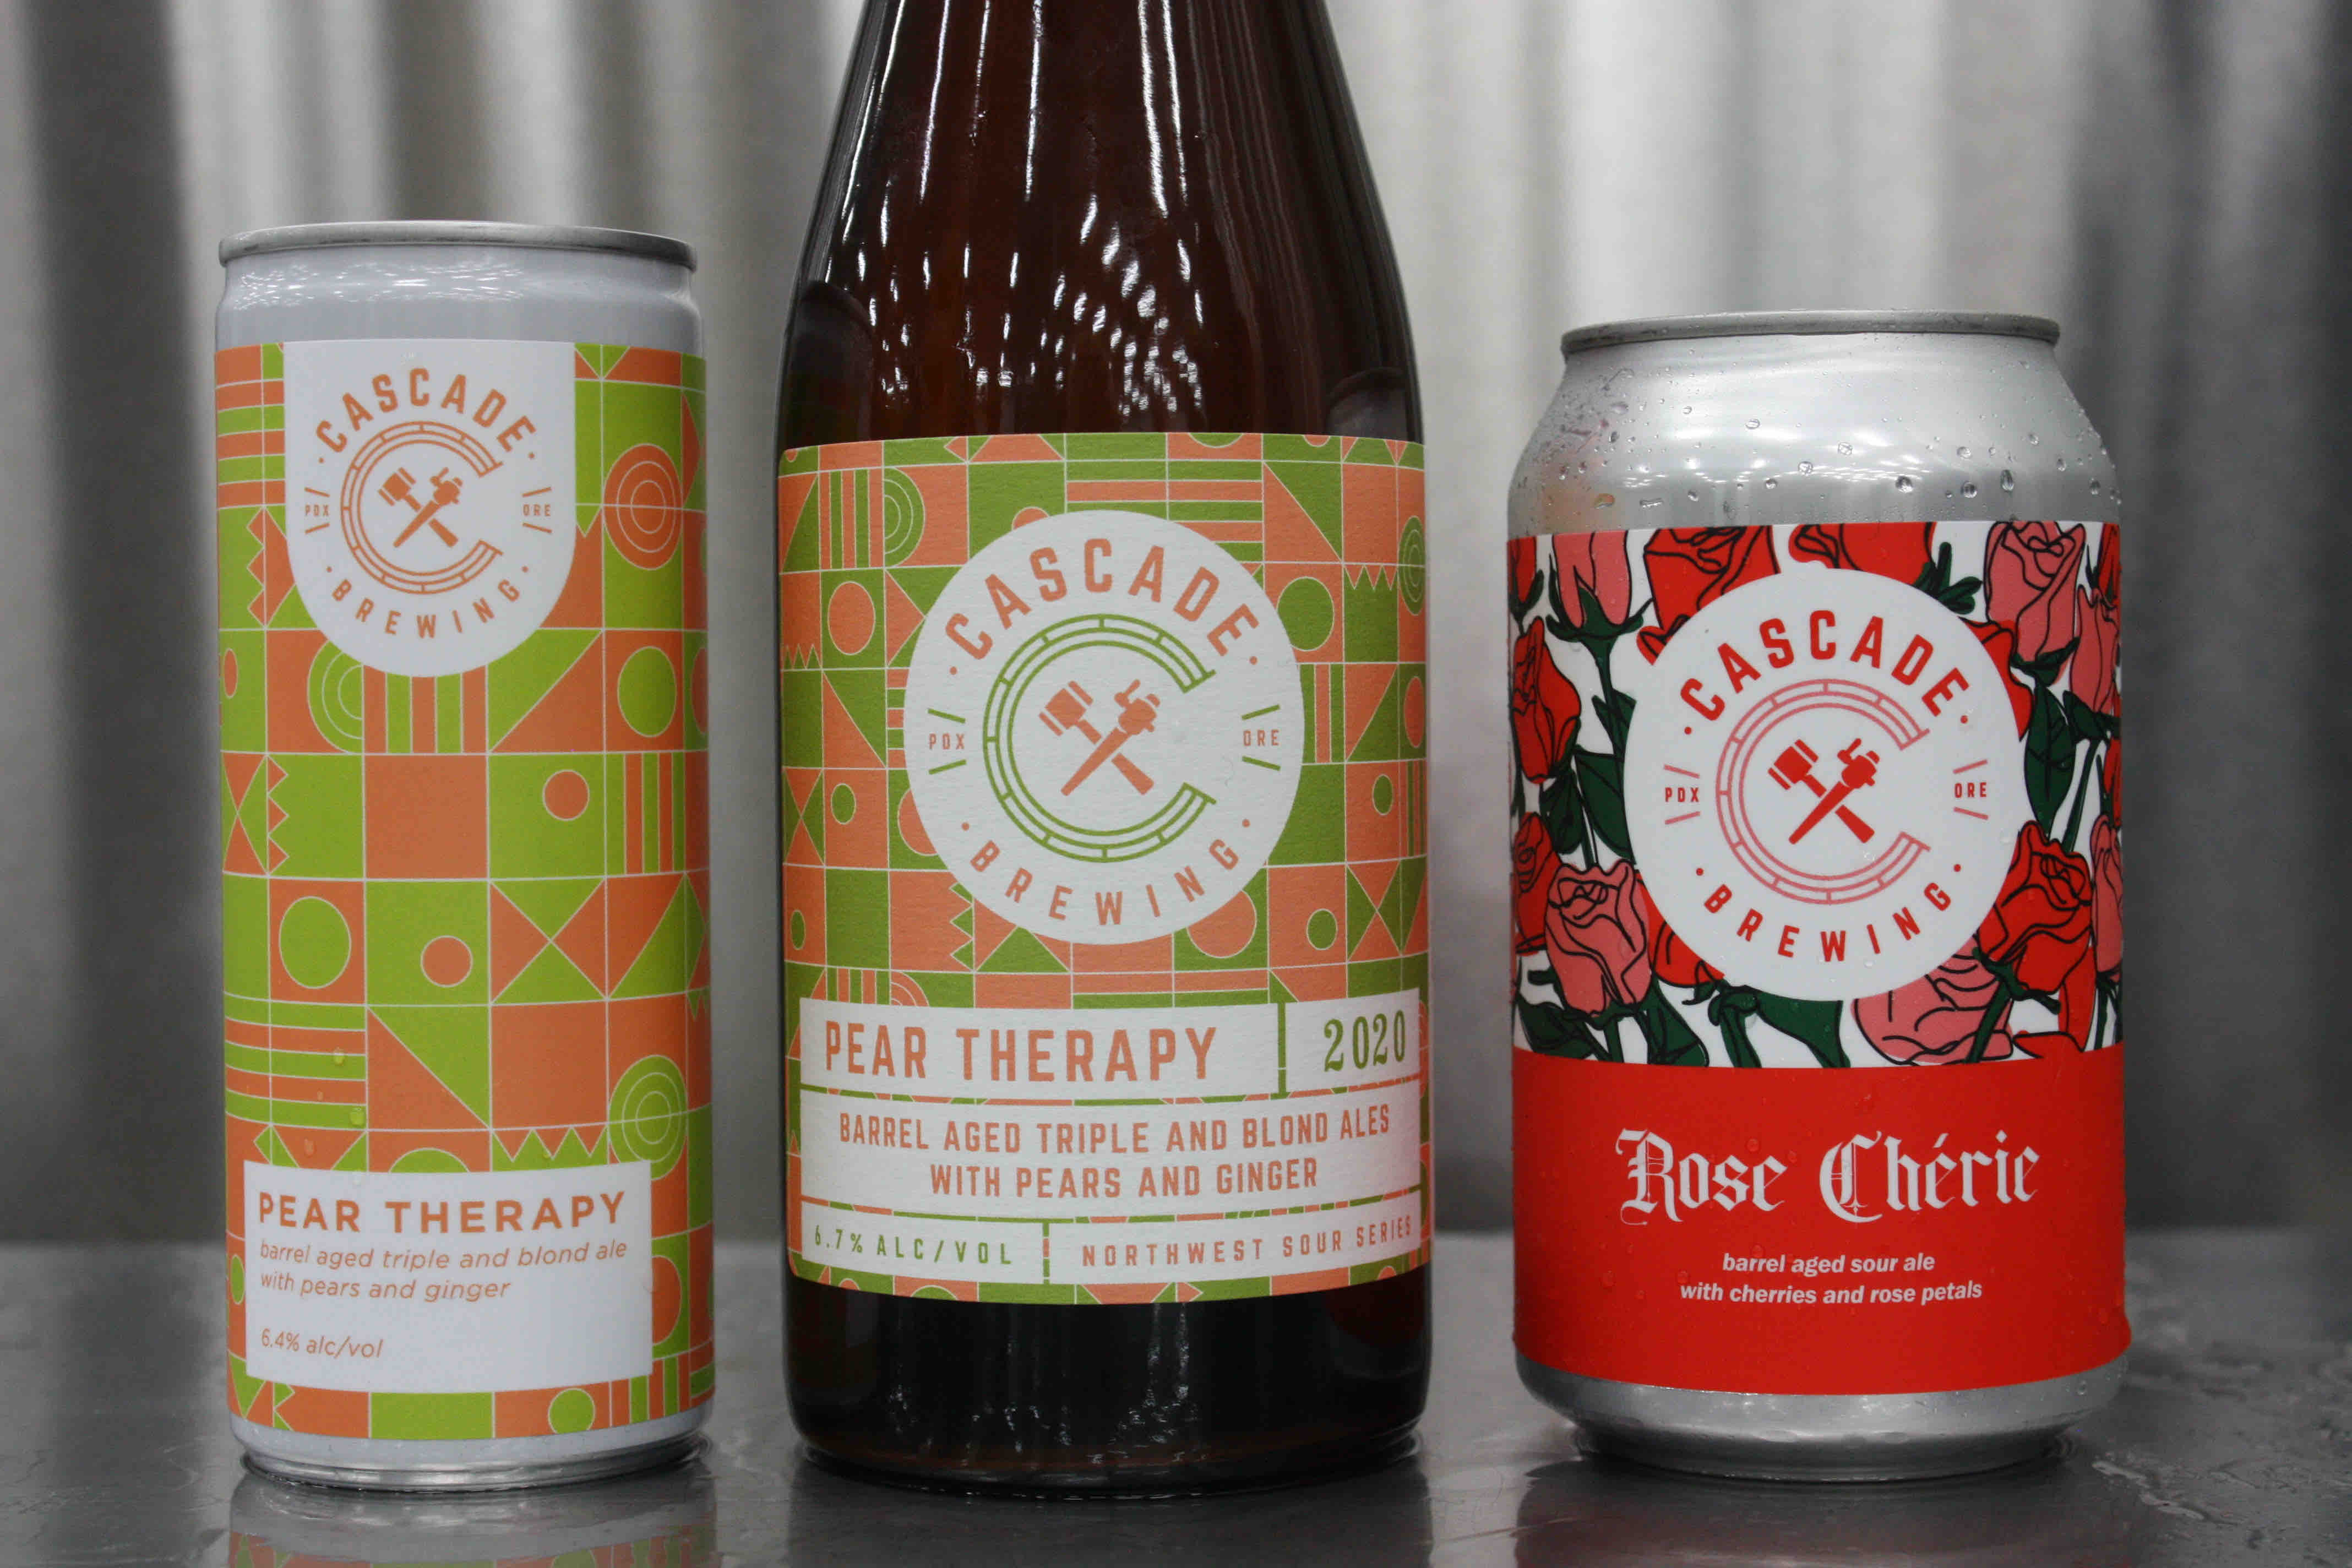 image of Pear Therapy and Rose Chérie courtesy of Cascade Brewing